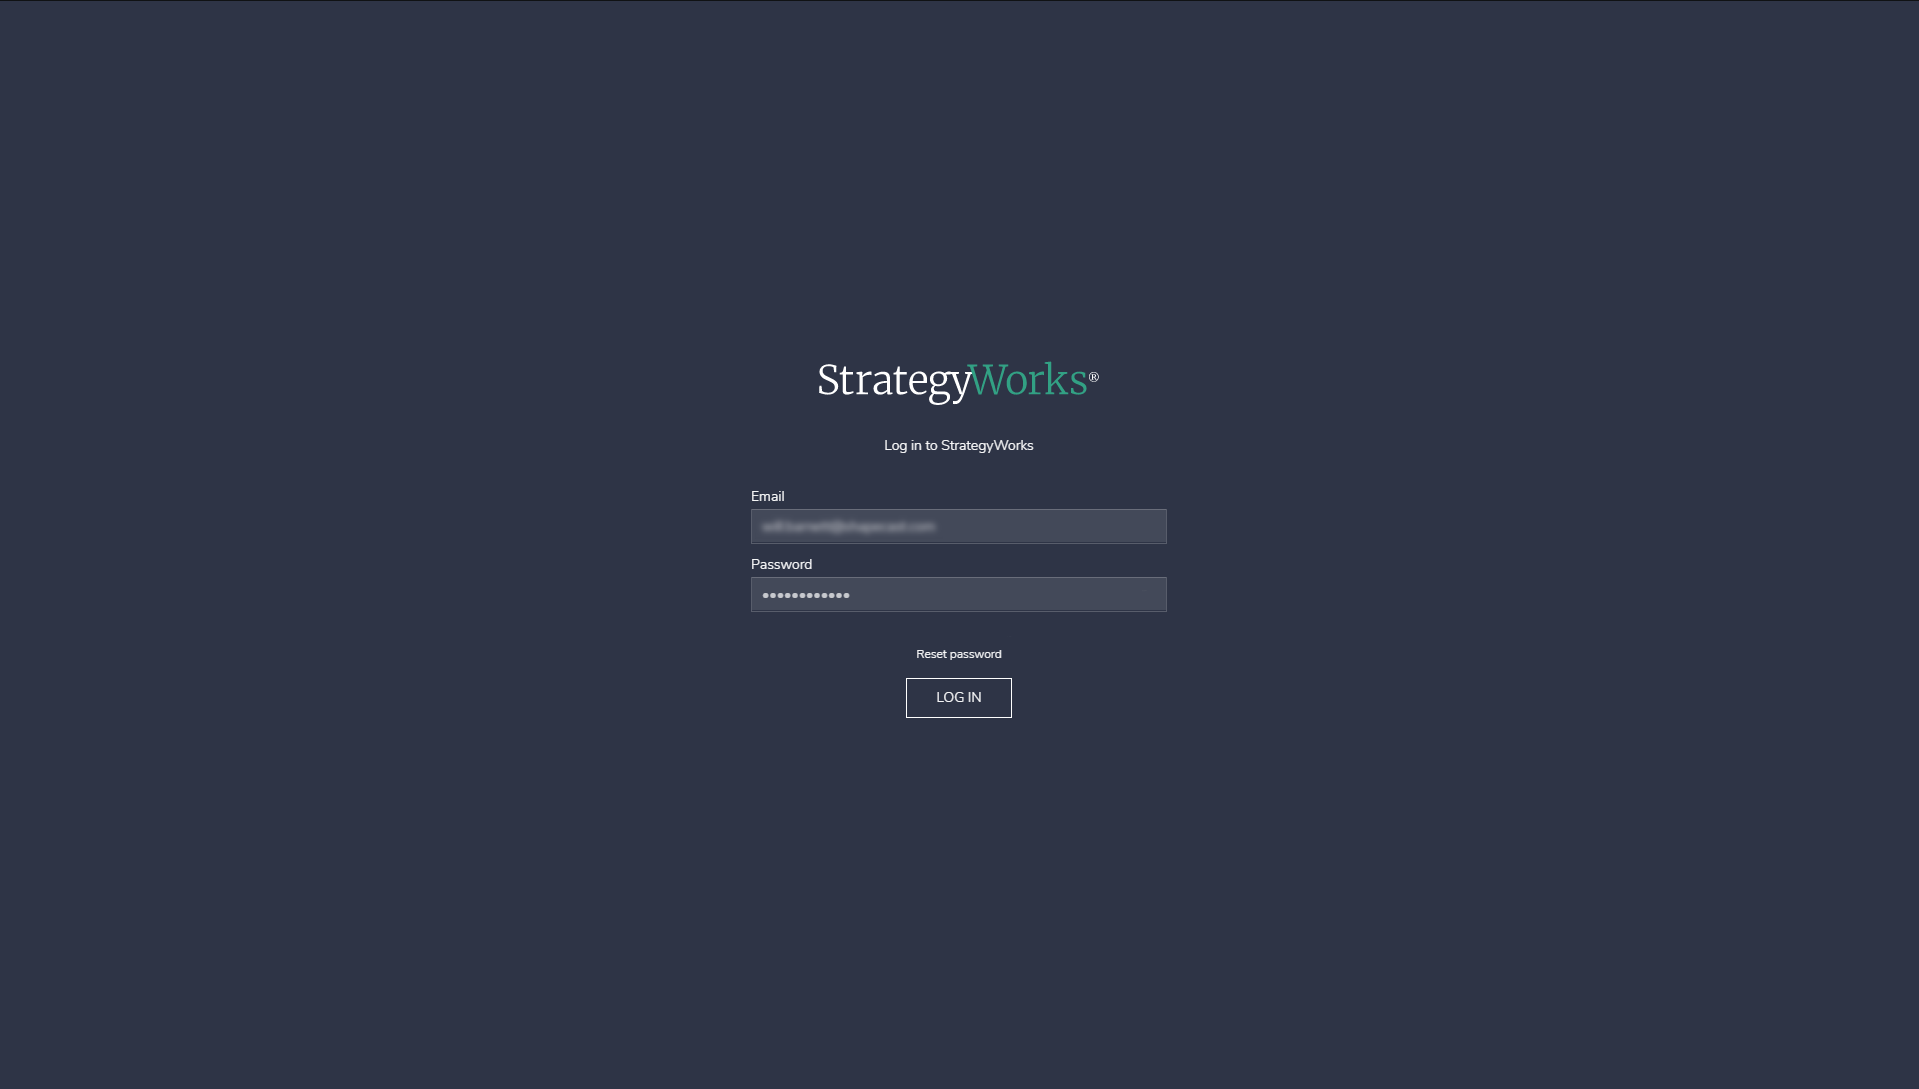 Log in to StrategyWorks